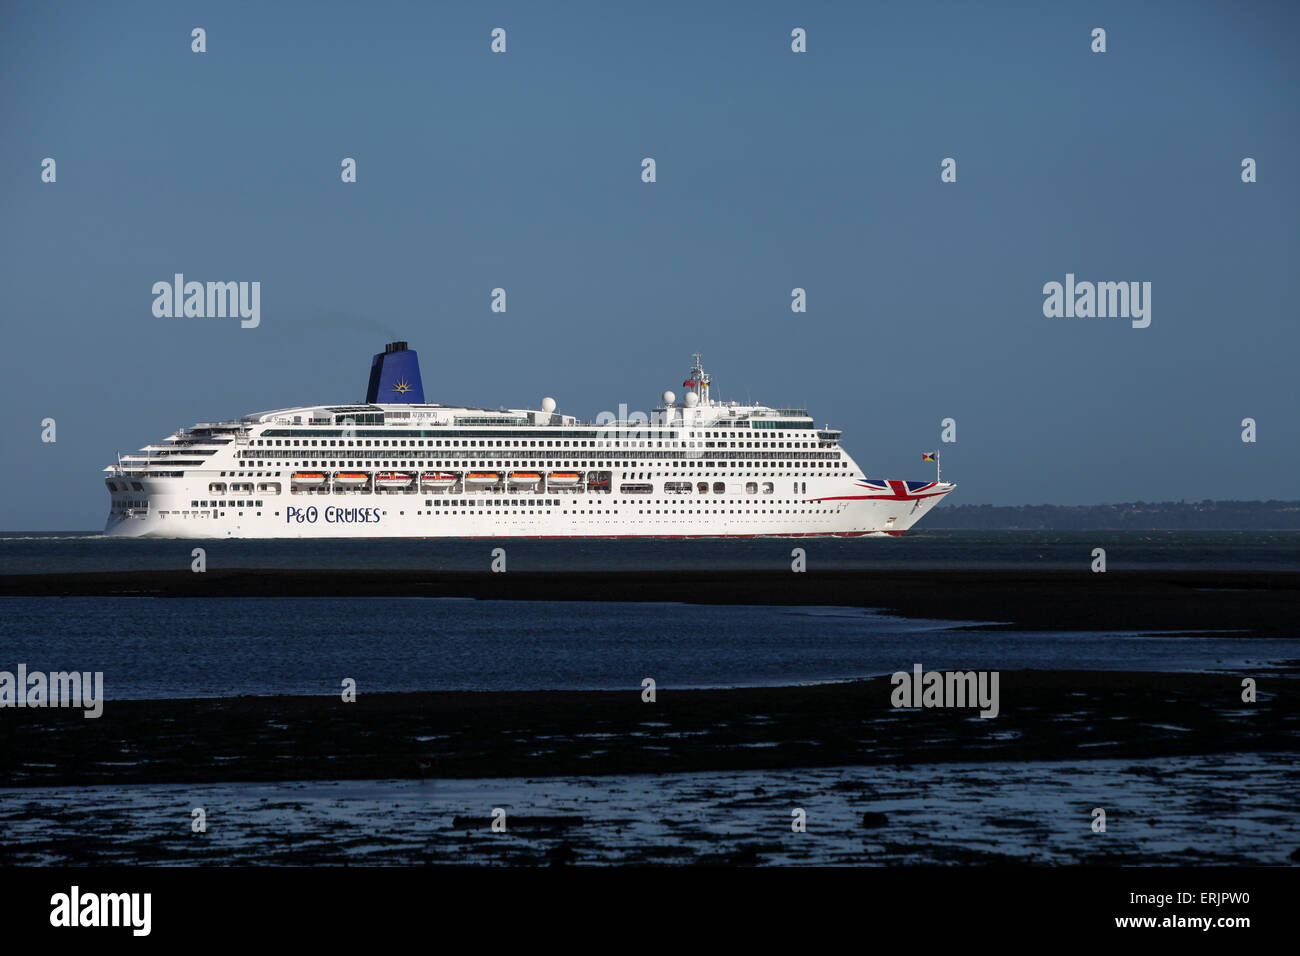 P&O Cruise Ship Aurora pictured with her new livery Union Jack logo leaving Southampton - Stock Image